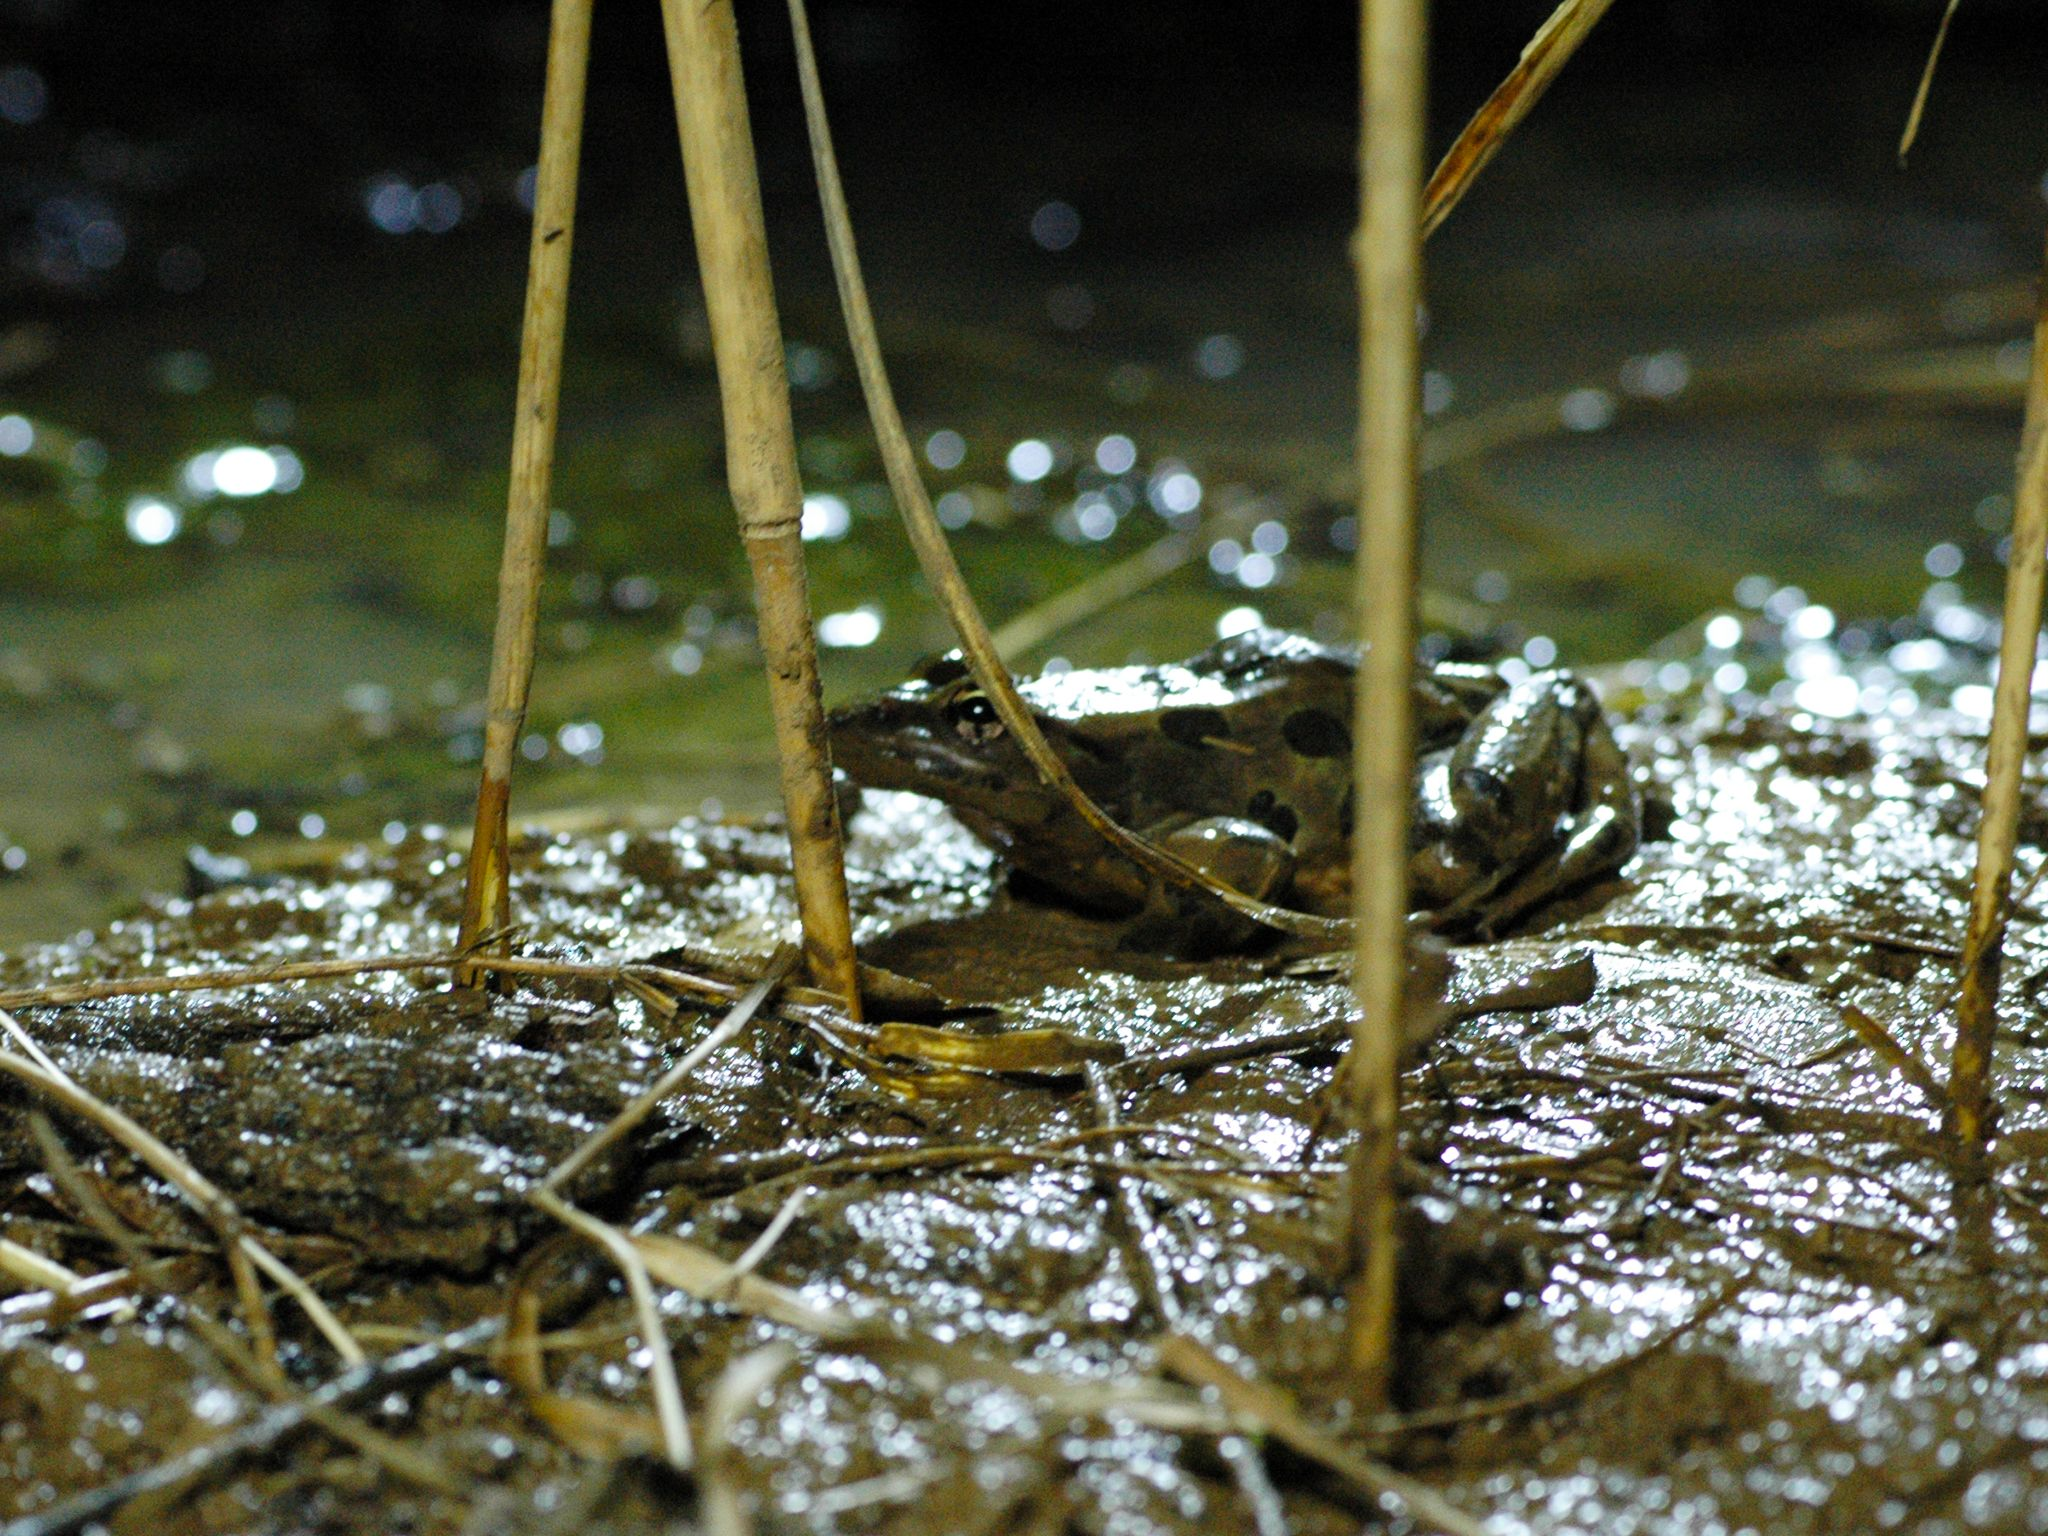 Prairie du Chien, WI USA: A leopard frog hunting insects at the water's edge. This image is from ... [Photo of the day - January 2015]